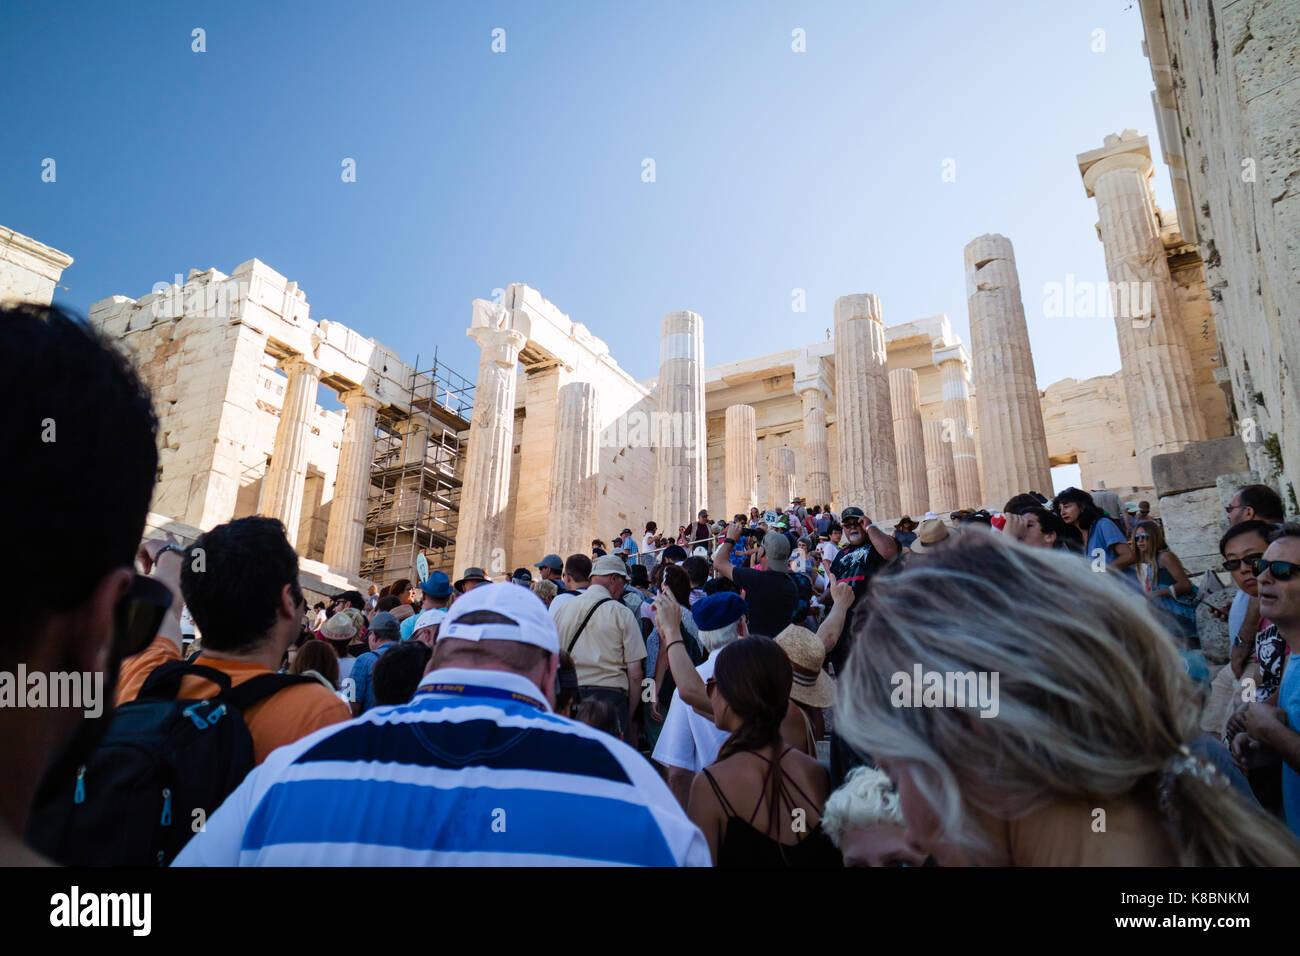 Crowd of Tourists queueing up to enter The Propylaea of the Athen Acropolis in Athens, Greece, Europe, Sep 2017 Stock Photo